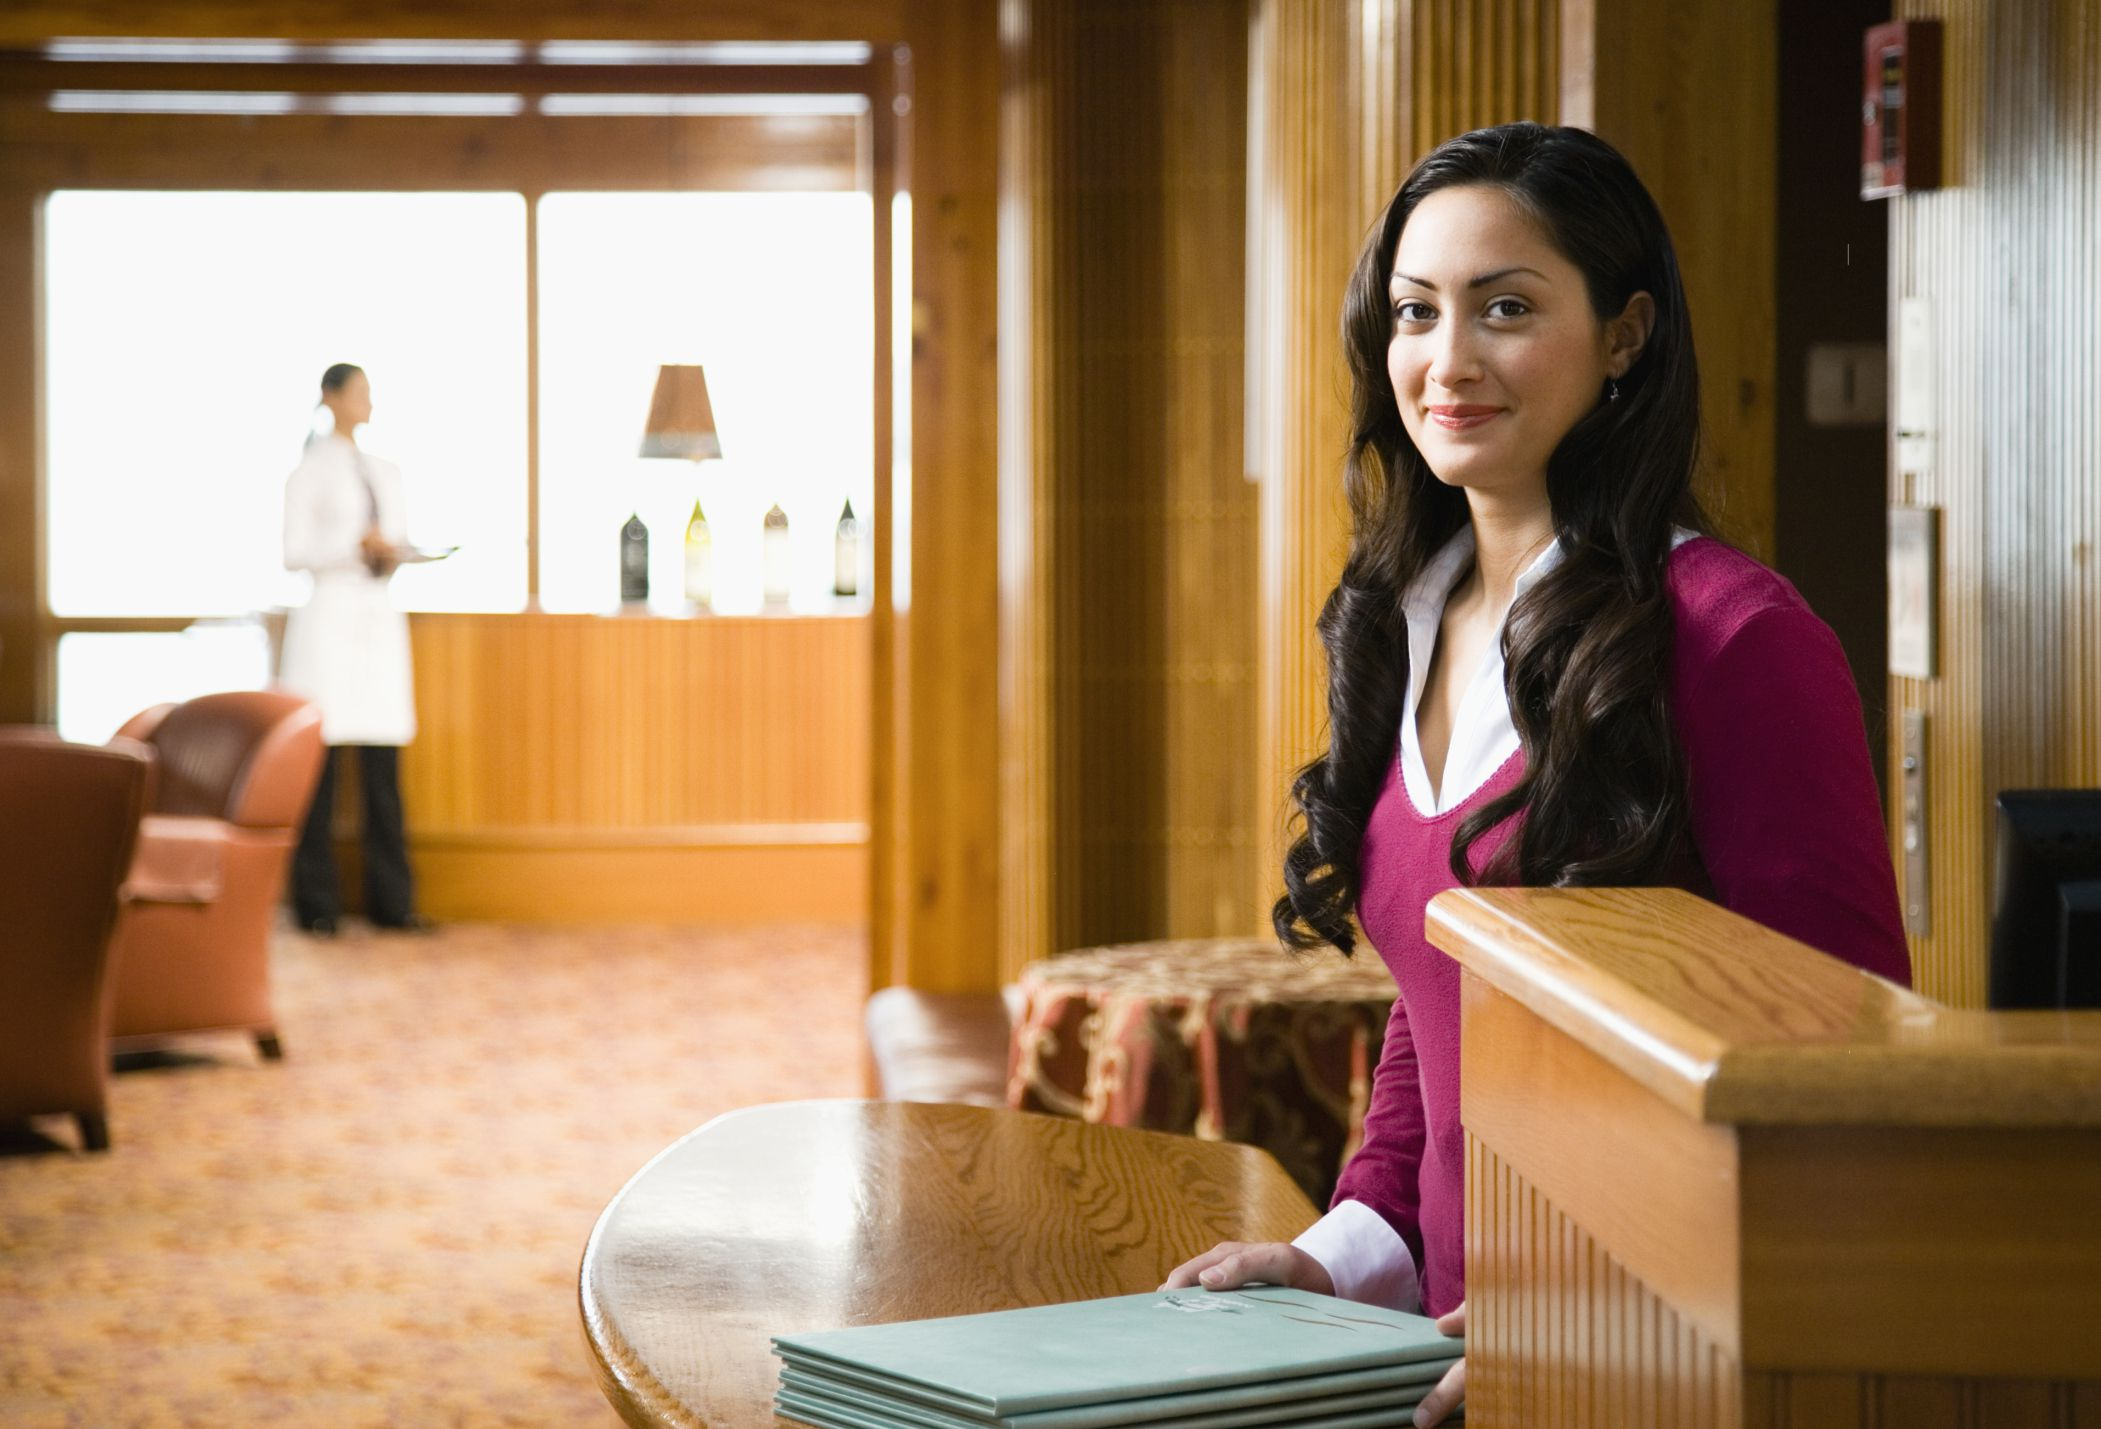 What To Wear To Work For A Hospitality Job